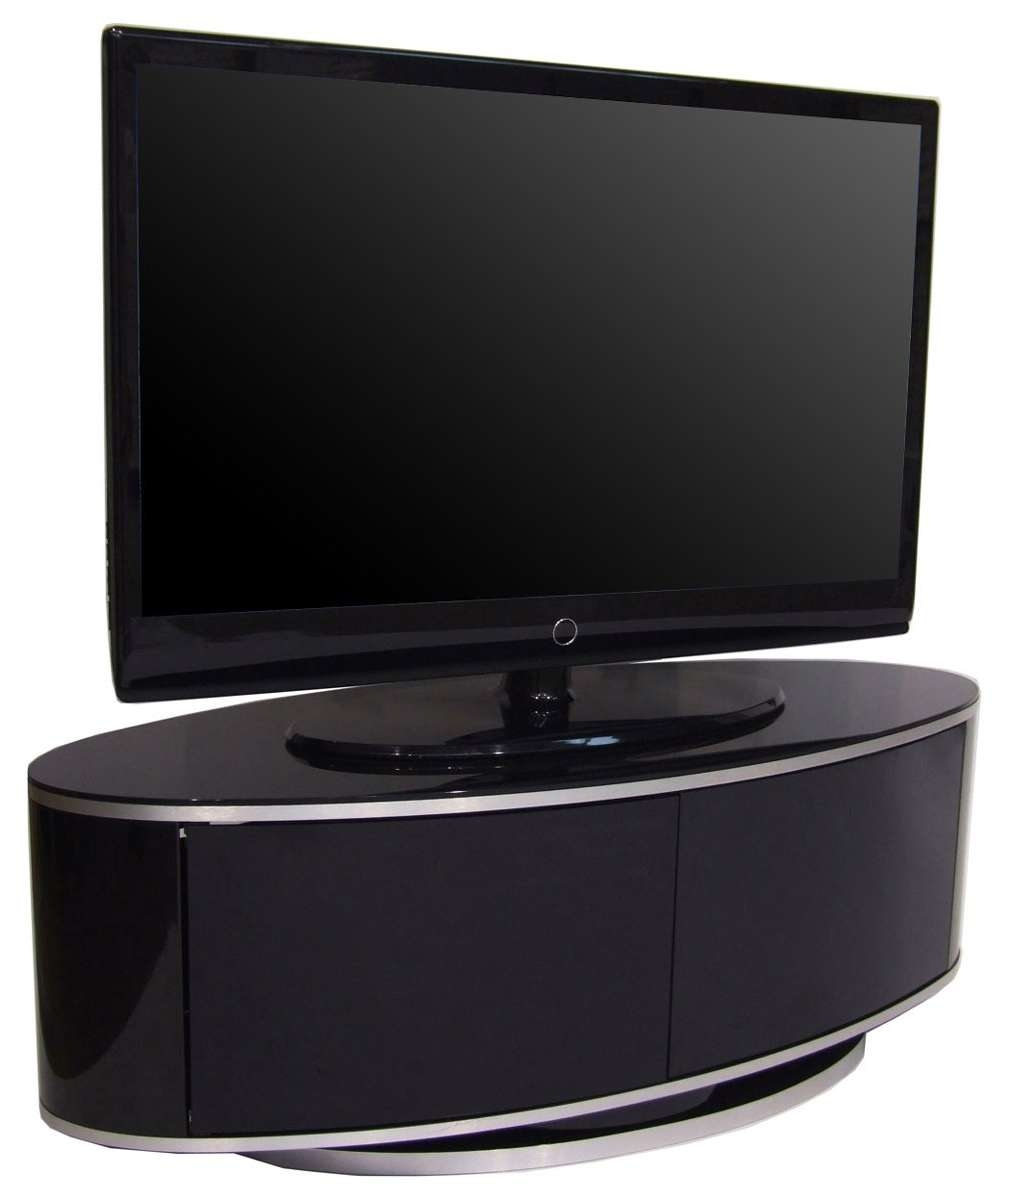 Luna High Gloss Black Oval Tv Cabinet Throughout White High Gloss Corner Tv Stands (View 5 of 20)